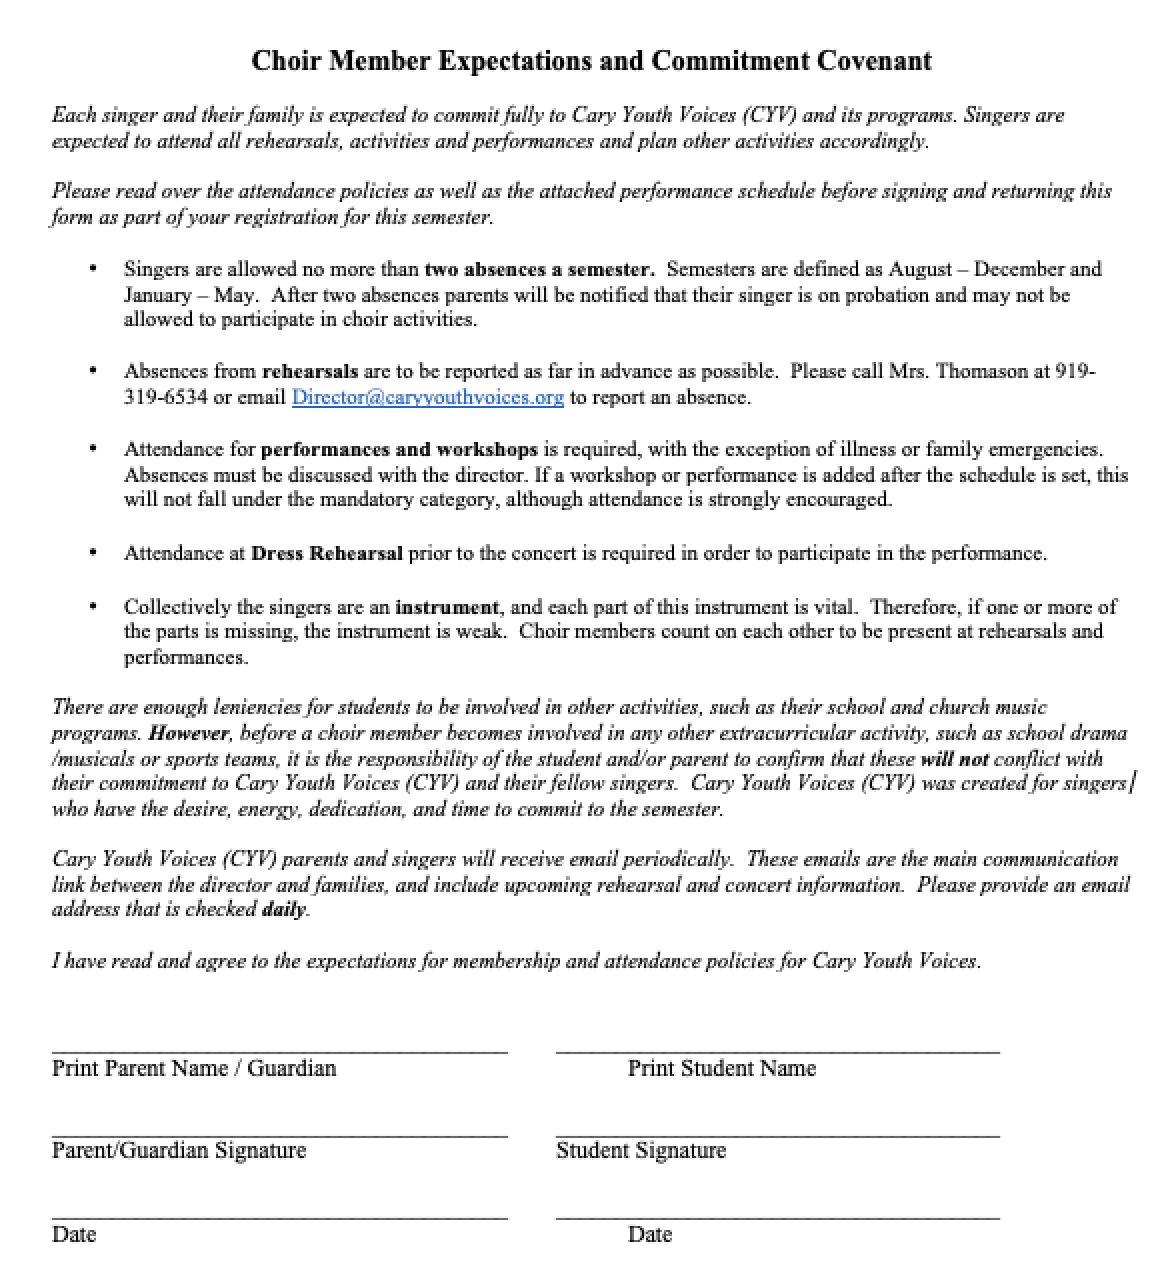 application form.png